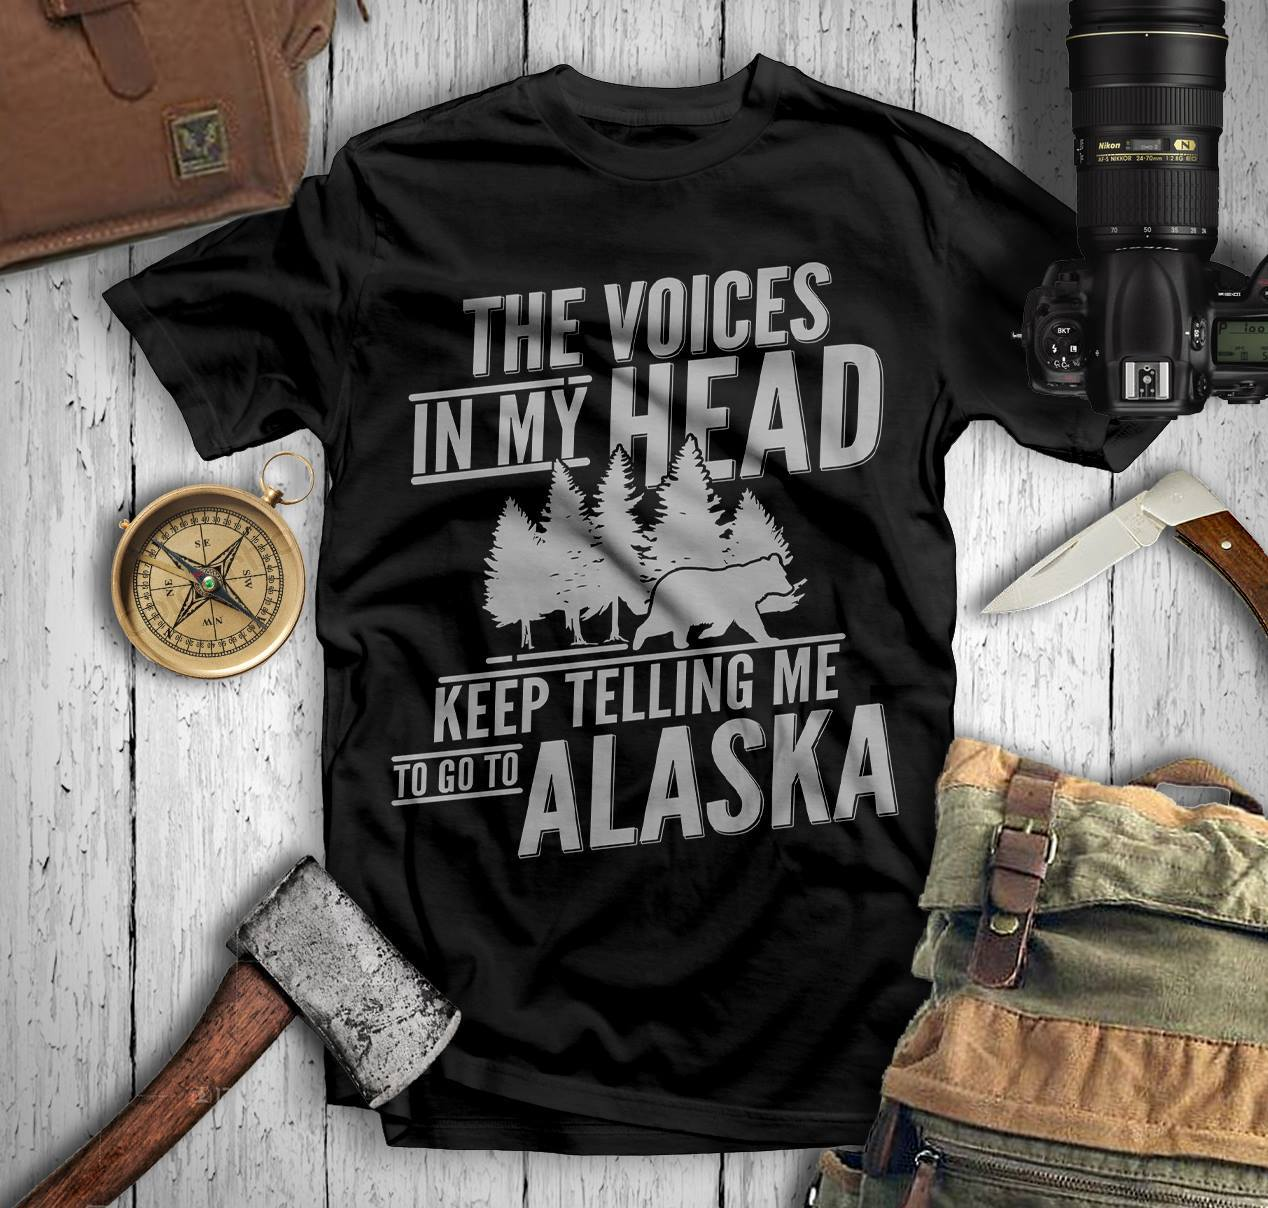 Alaska The Voice in My Head Keep Telling Me to Go to Alaska Shirt